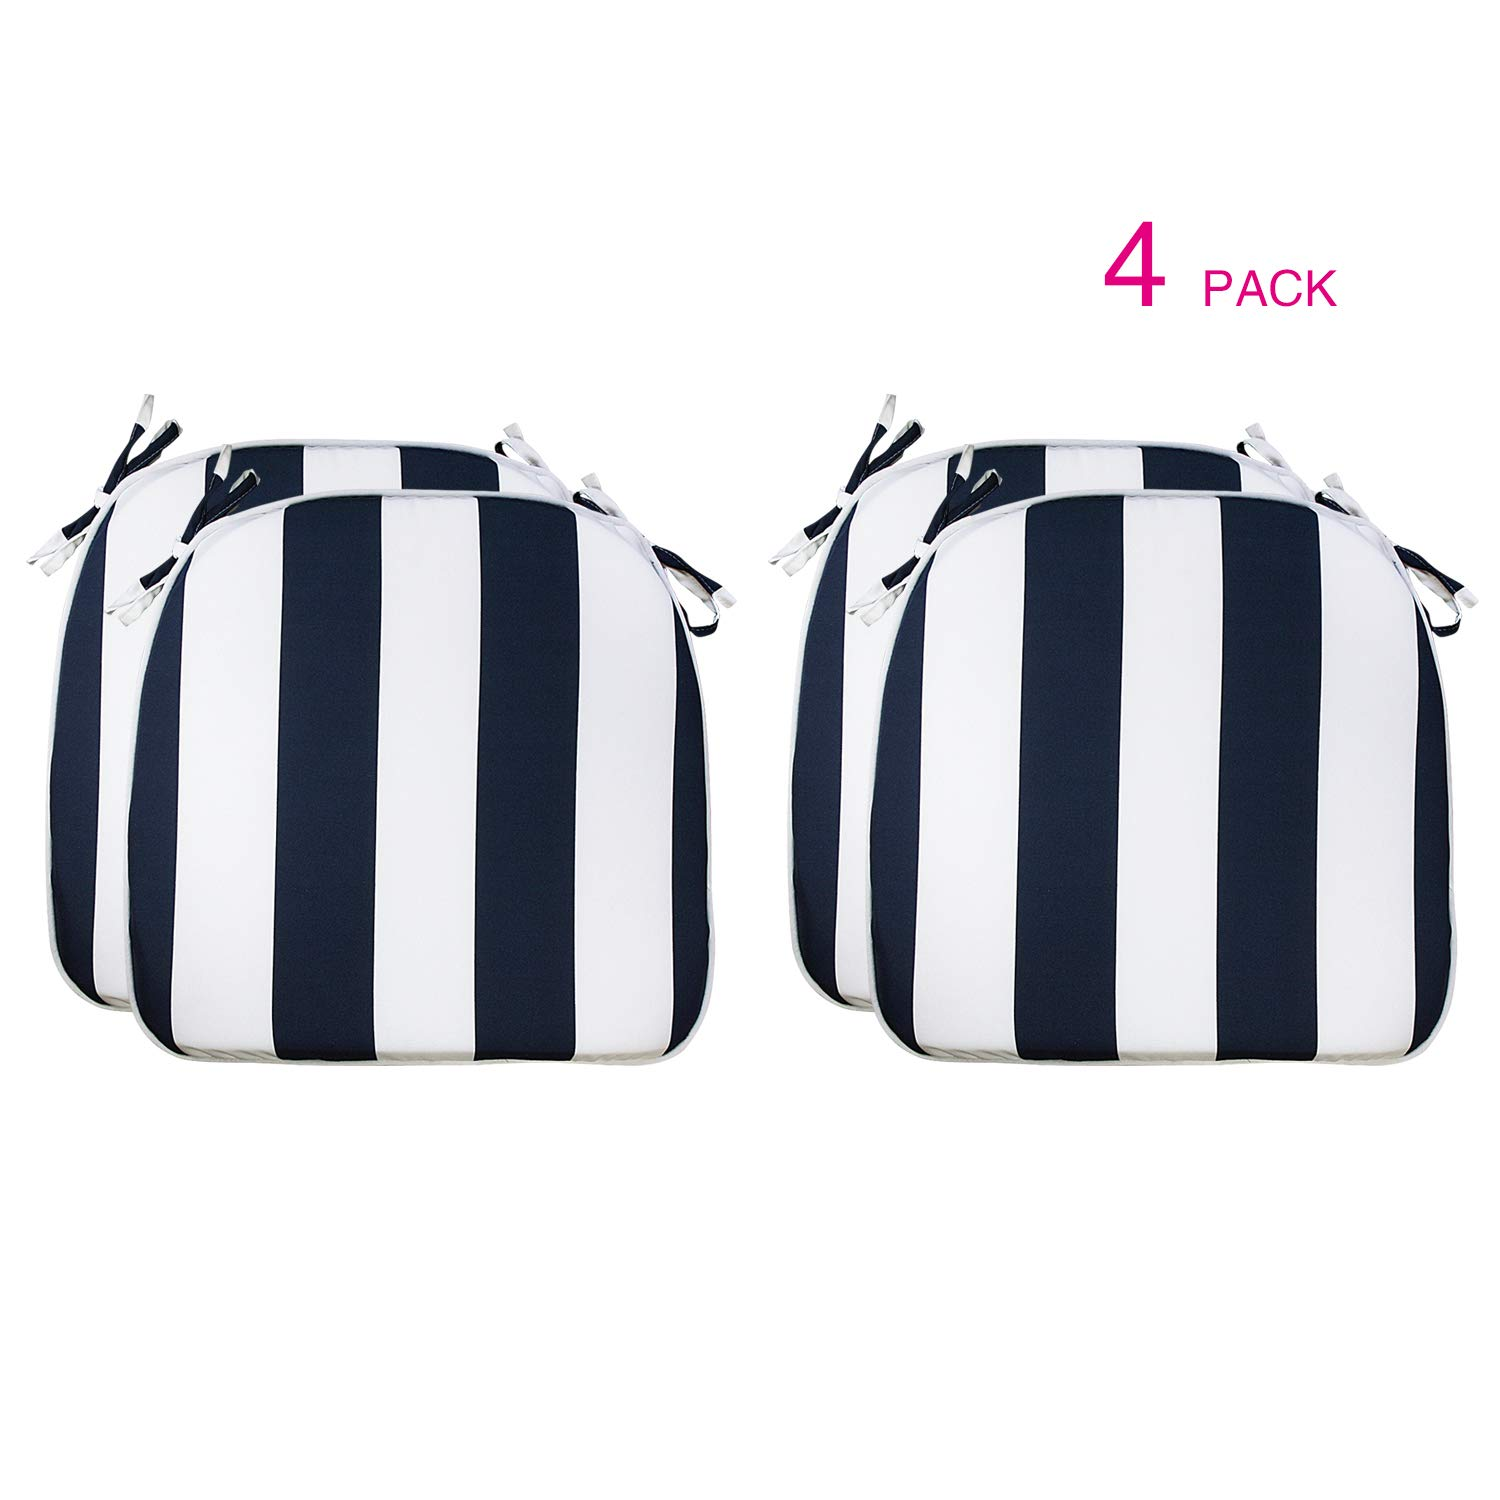 Fabritones Outdoor Cushions 16x17 Inches 4 Pack Comfortable Seat Pads Navy Stripe Pattern Square Chair Pads for Outdoor Patio Furniture Garden Home Office